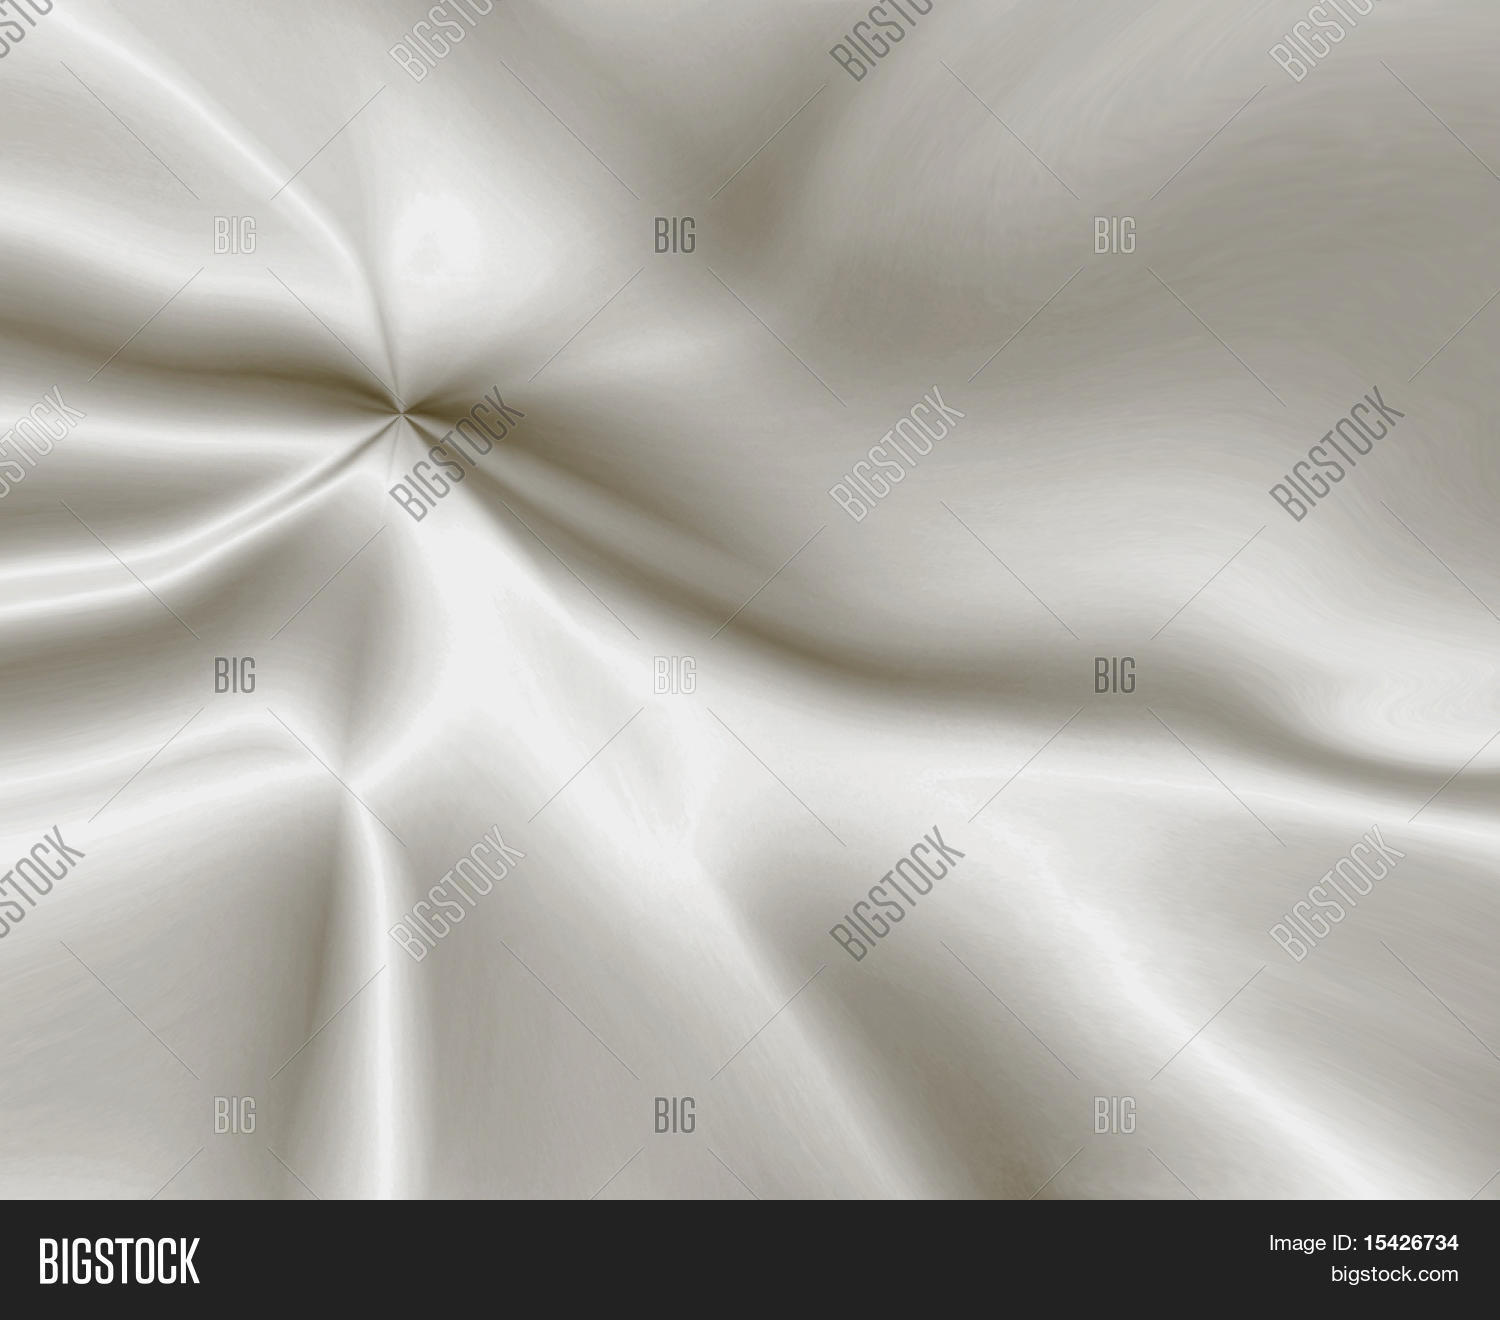 ef284924bb1f3 White Satin Background Image & Photo (Free Trial) | Bigstock